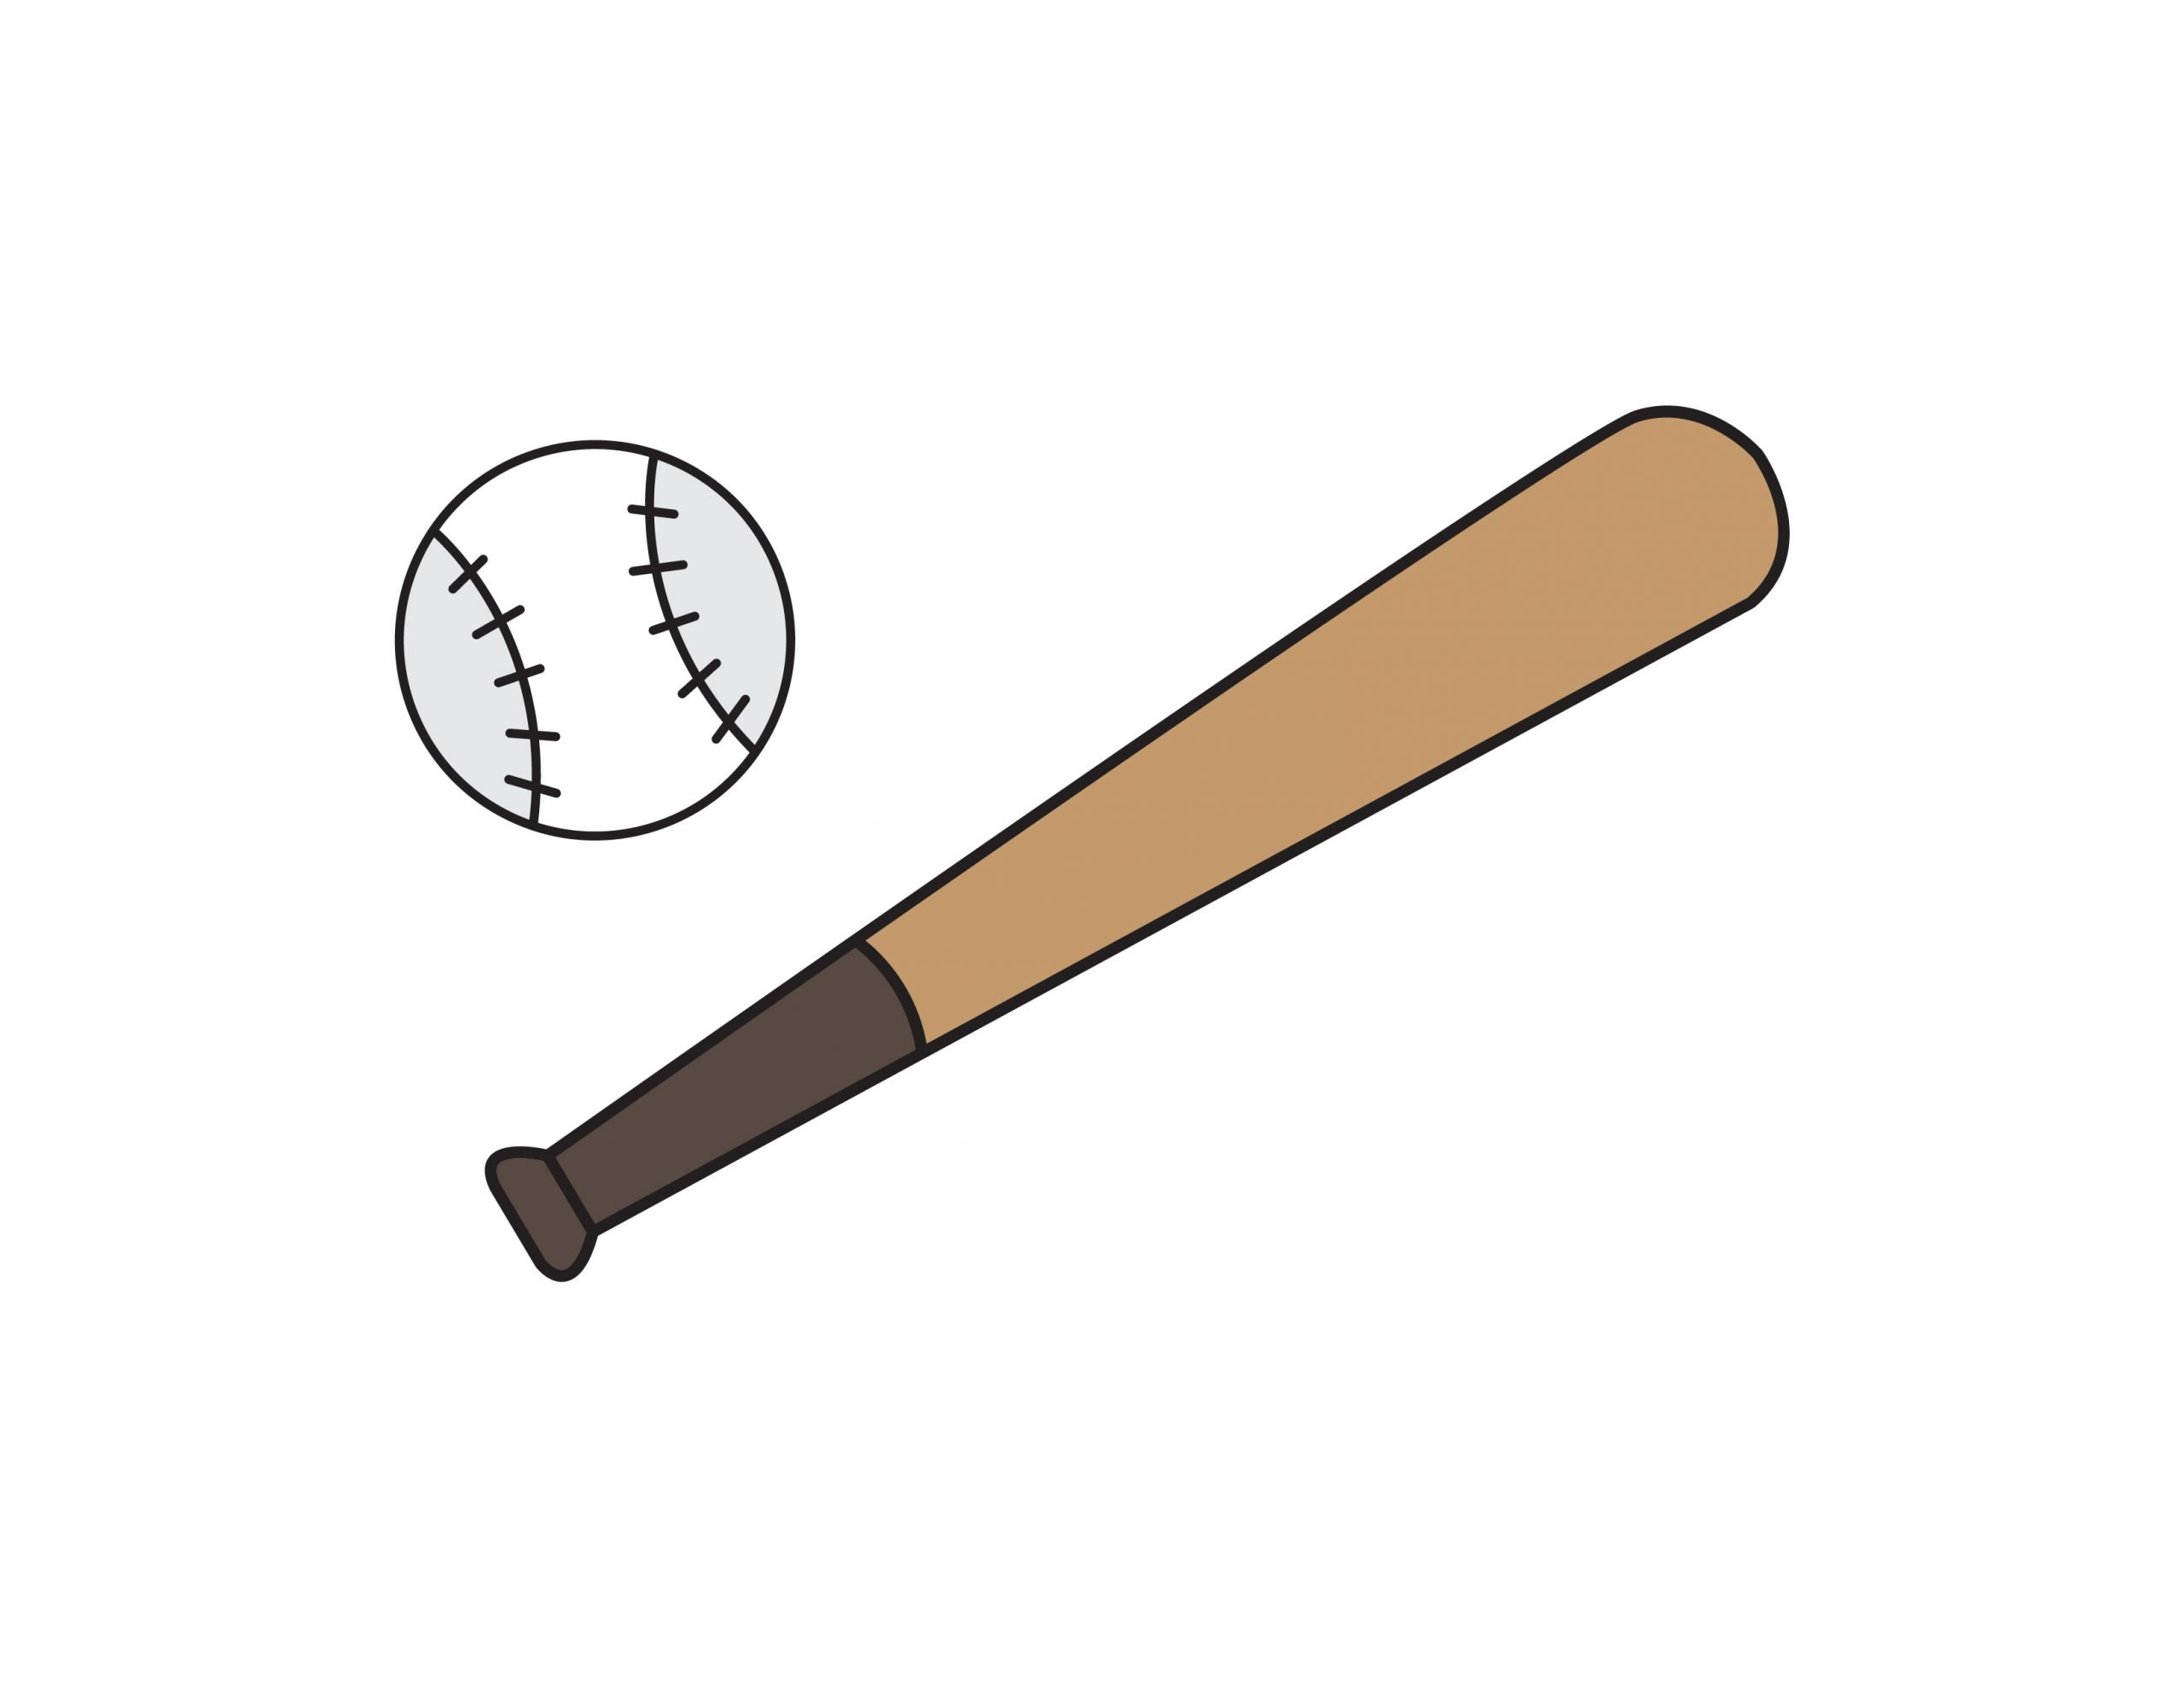 How To Draw Baseball & Bat (Sport) – Simple Step By Step for Young Kids